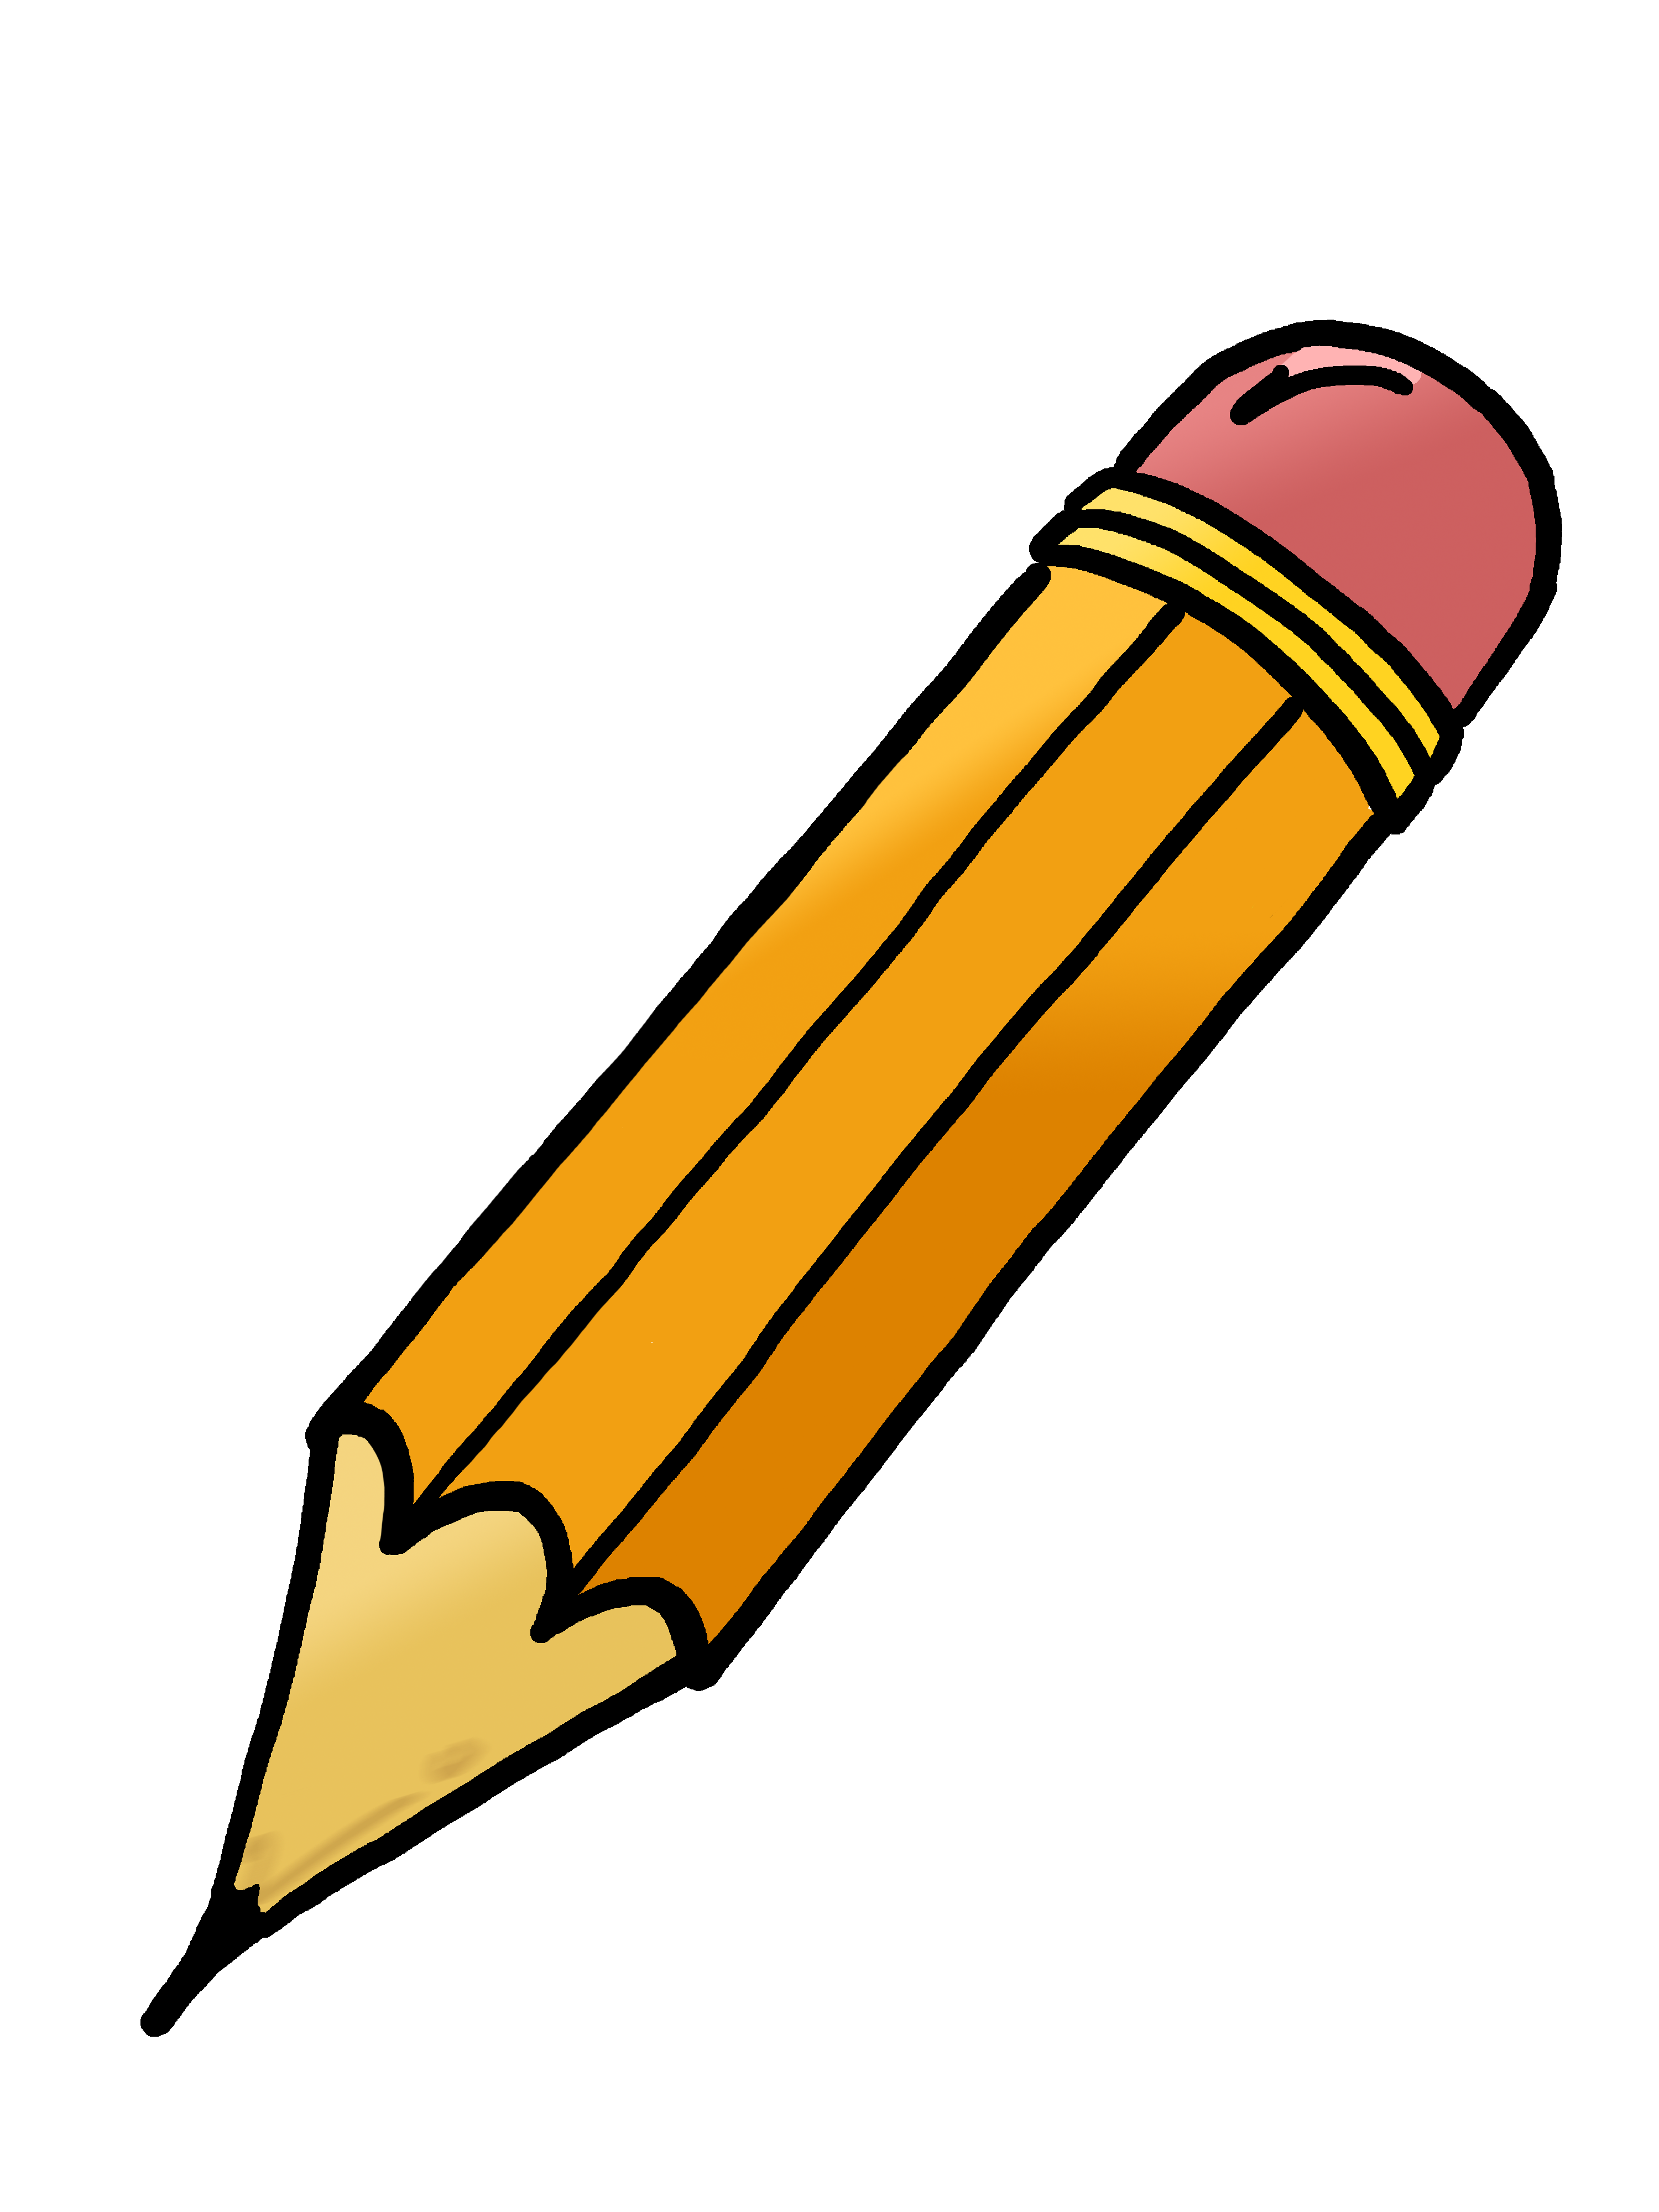 Pencil clipart #4, Download drawings